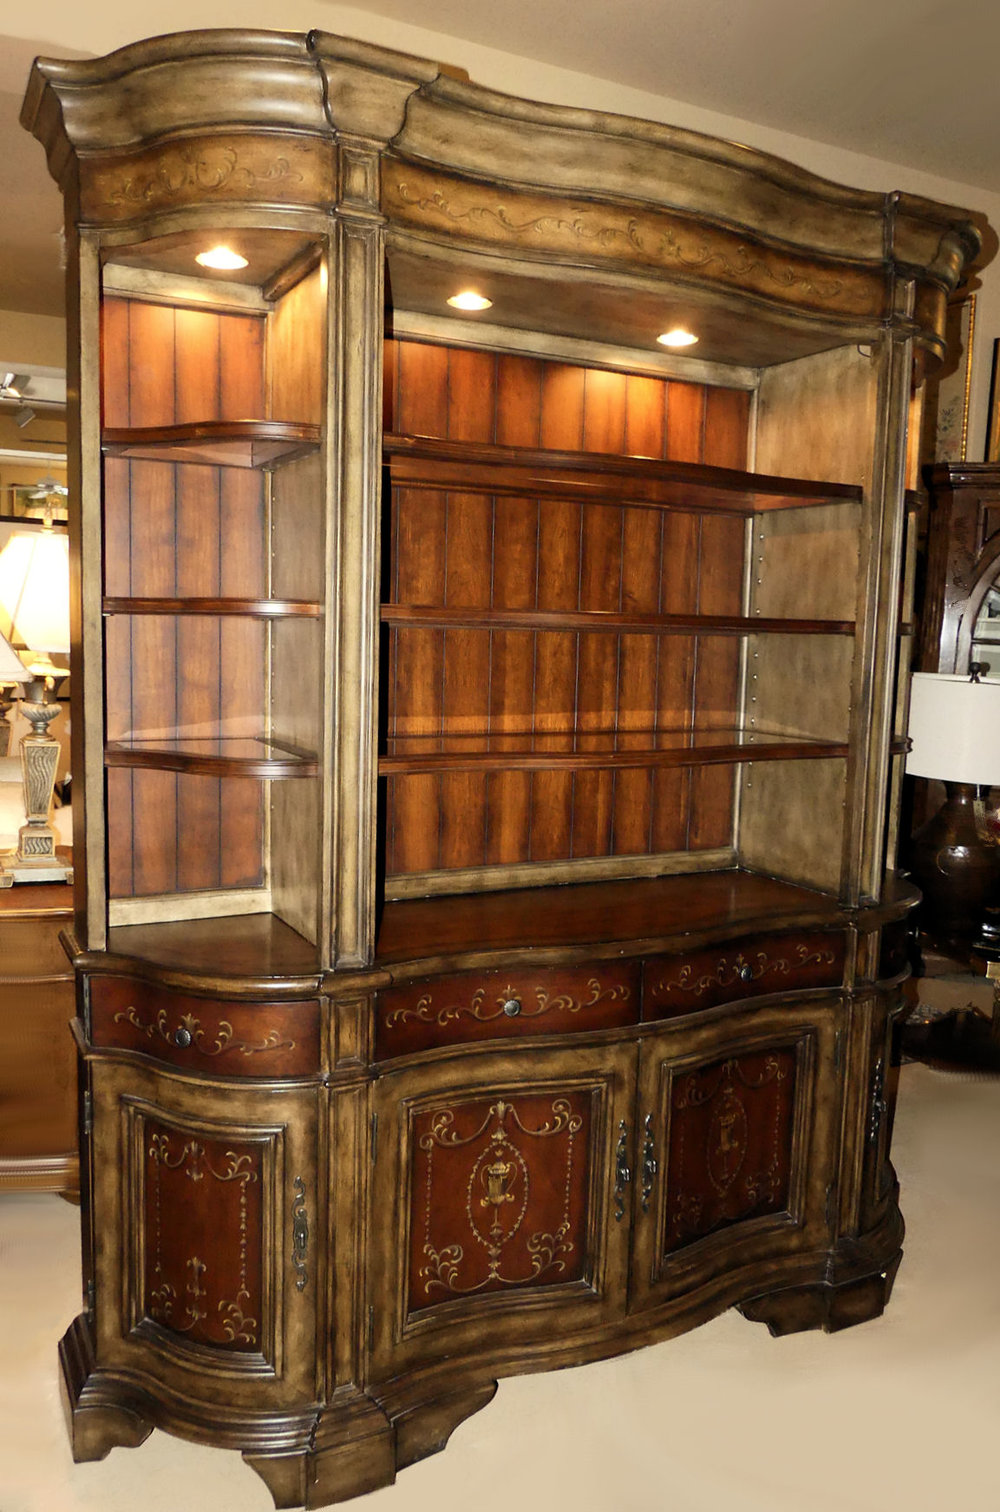 SOLD Hooker Seven Seas Serpentine Credenza with Lighted Hutch